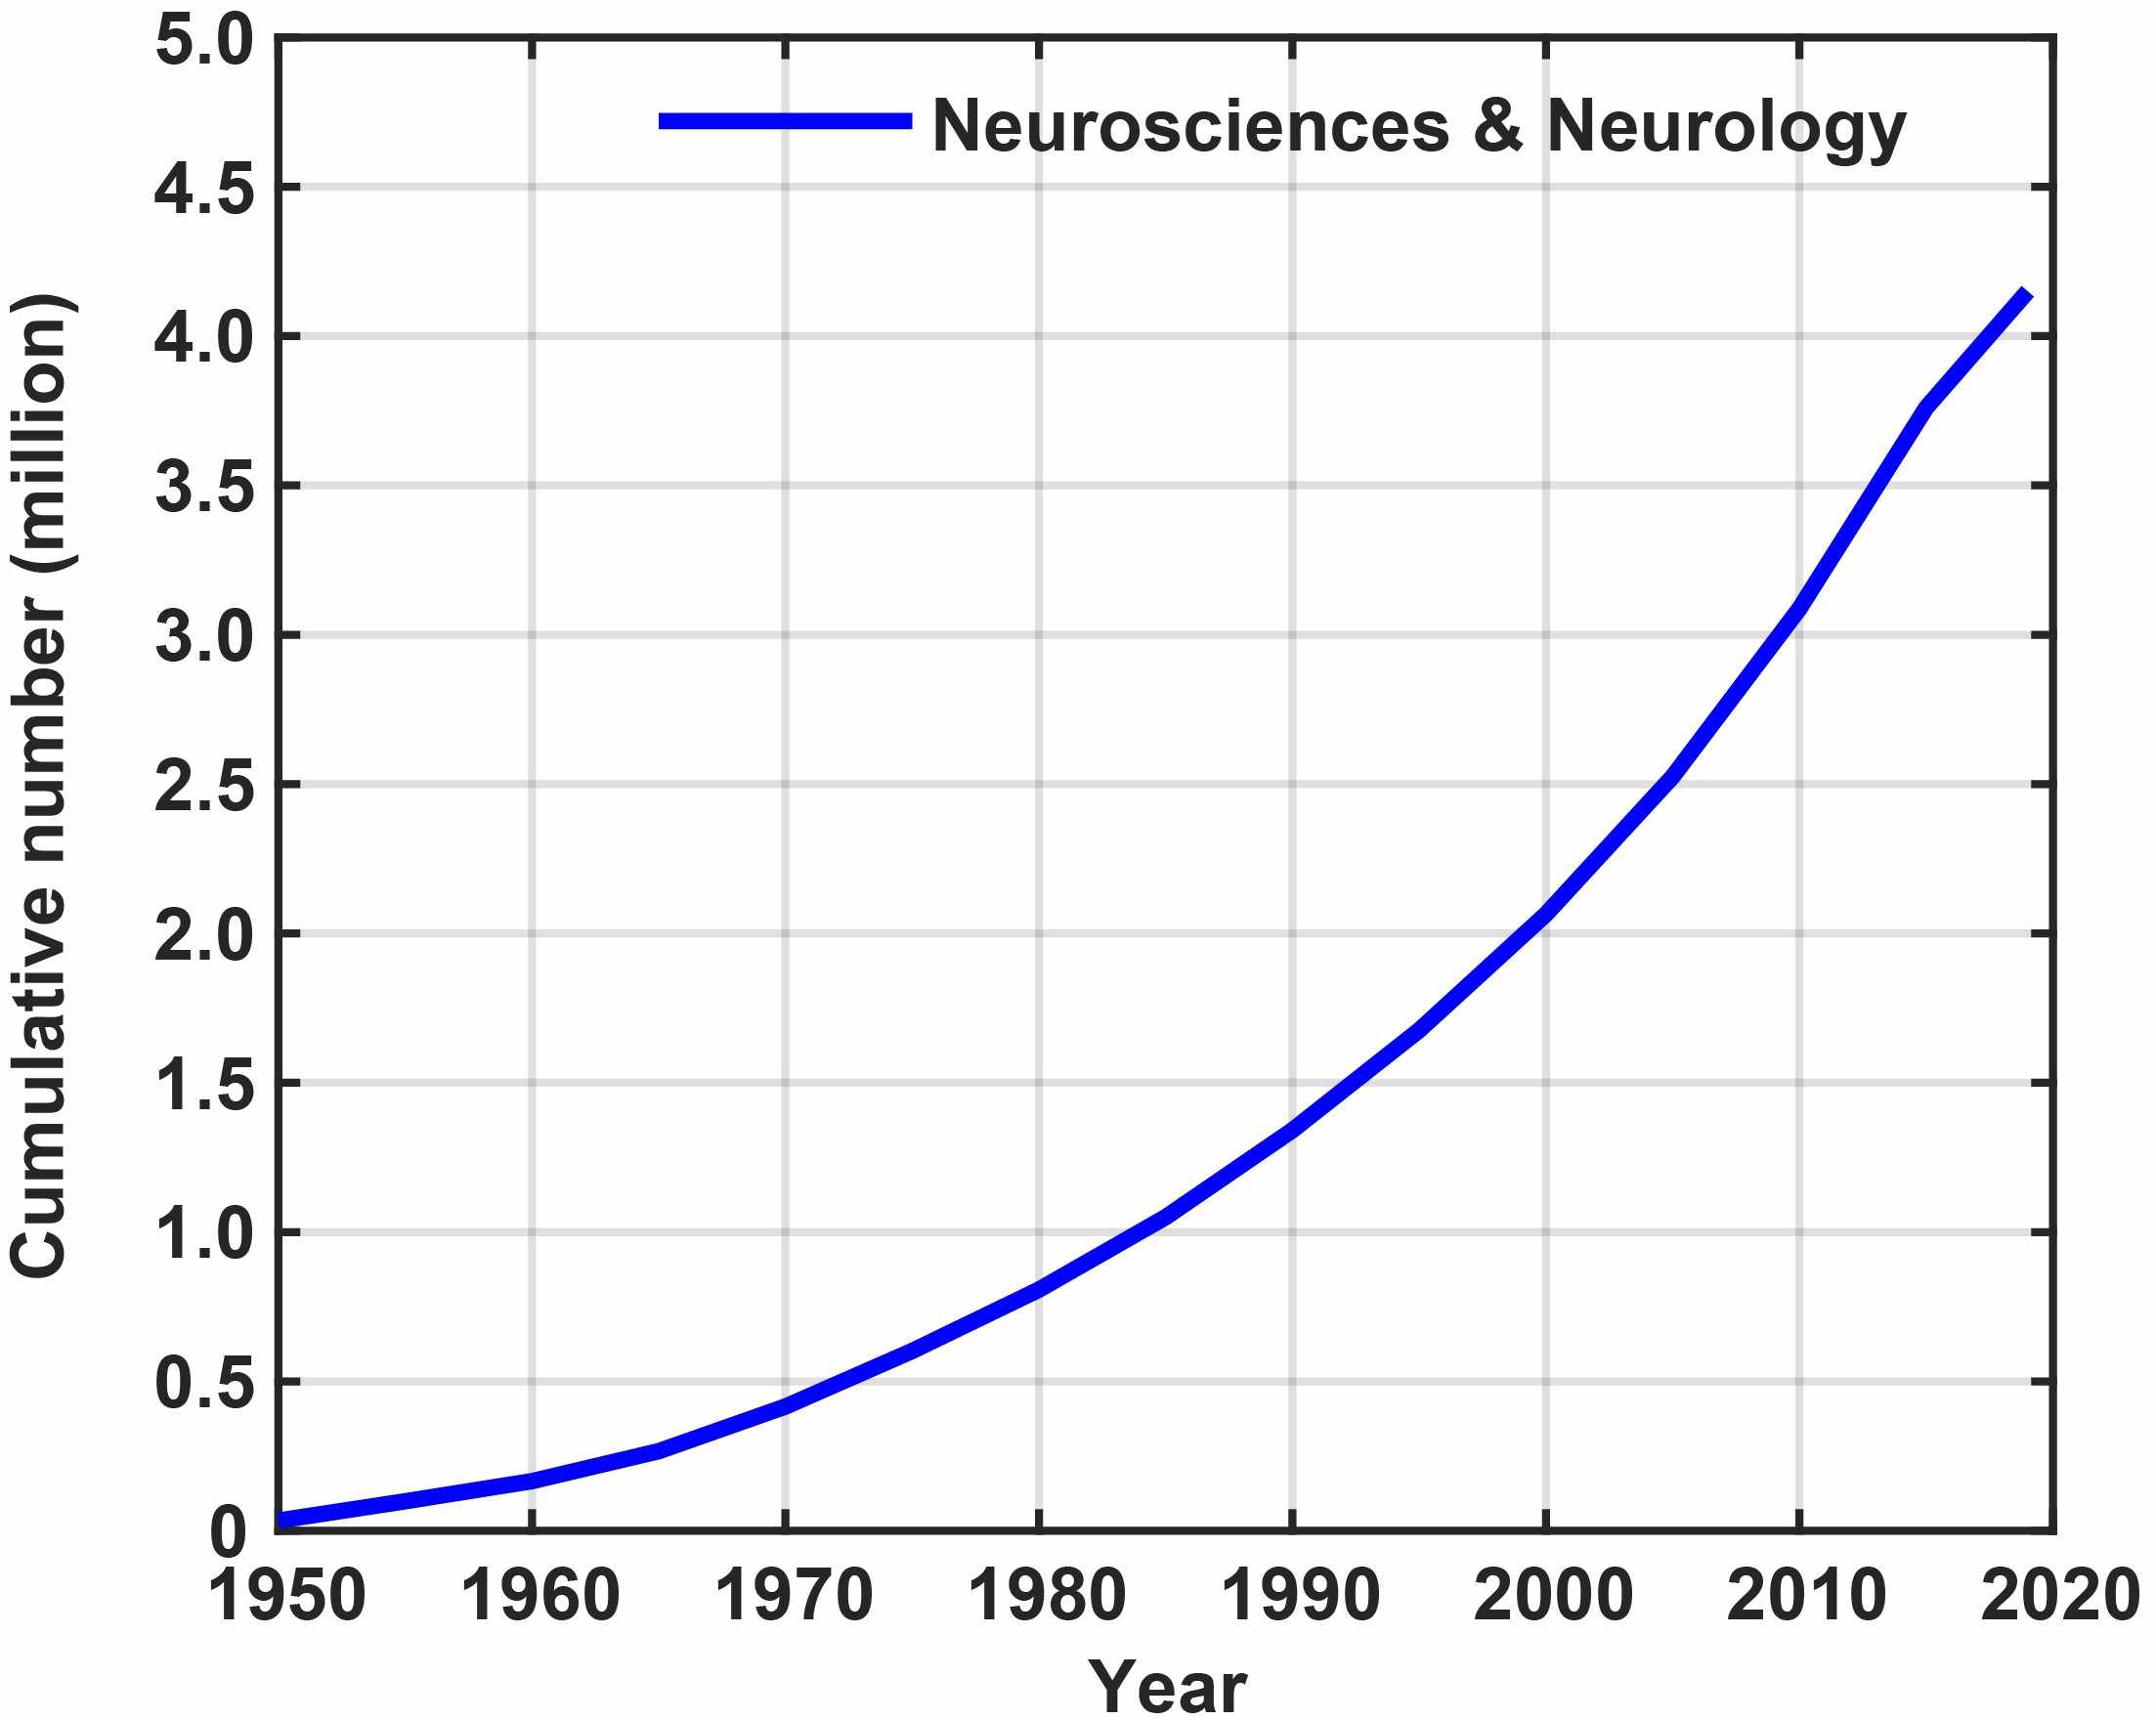 Publications trend in Neurosciences & Neurology